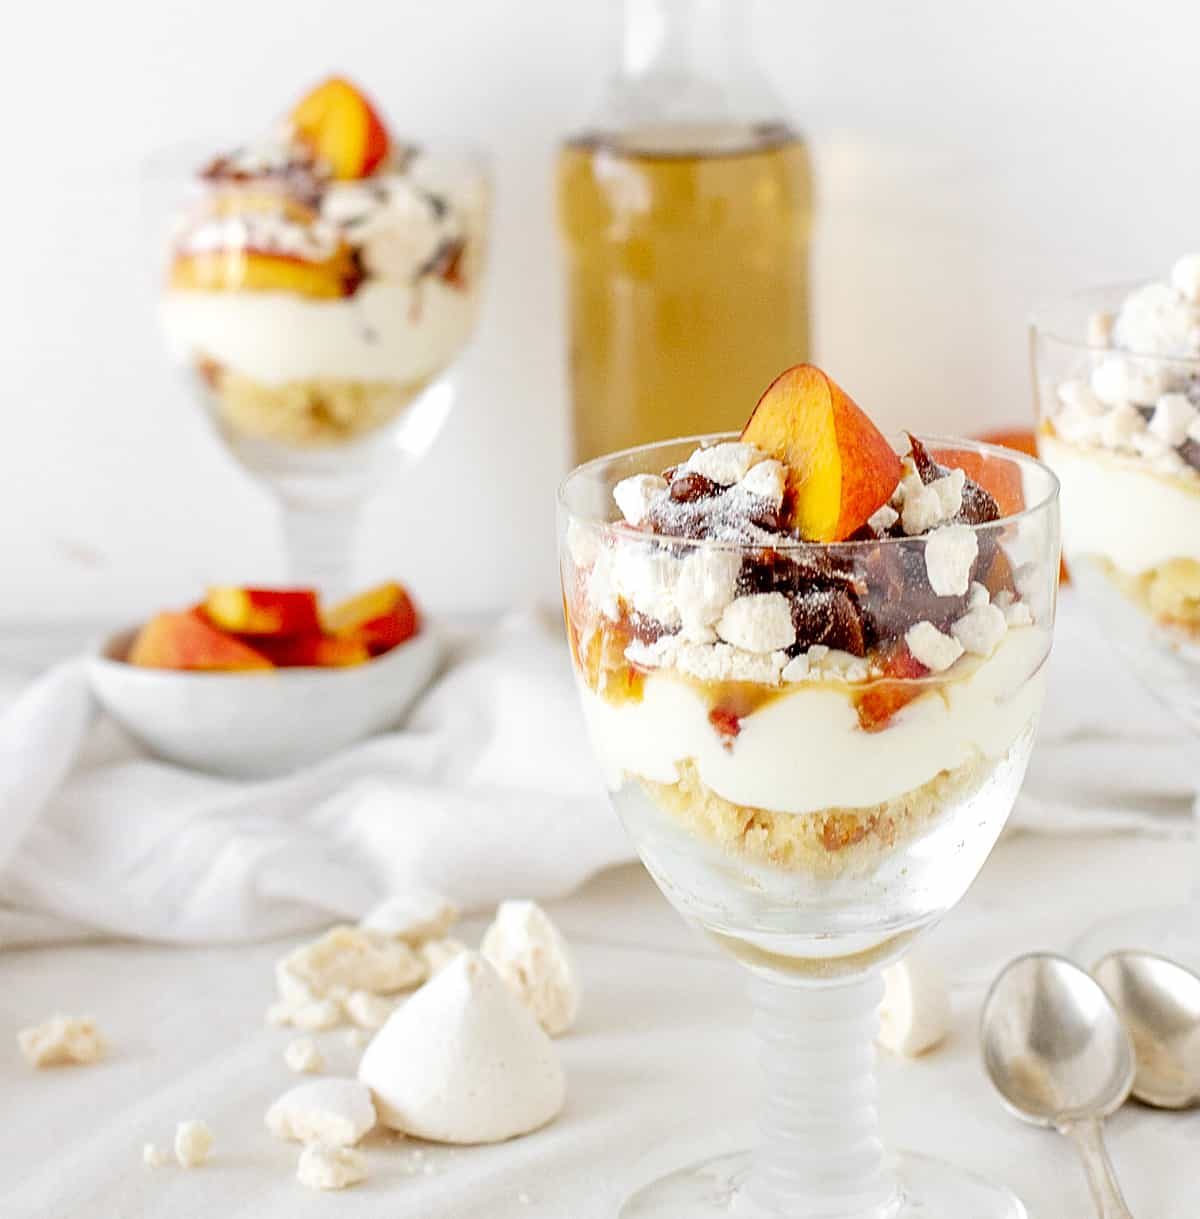 Long stem glasses with peaches and cream dessert, white surface, bottle and bowls in background